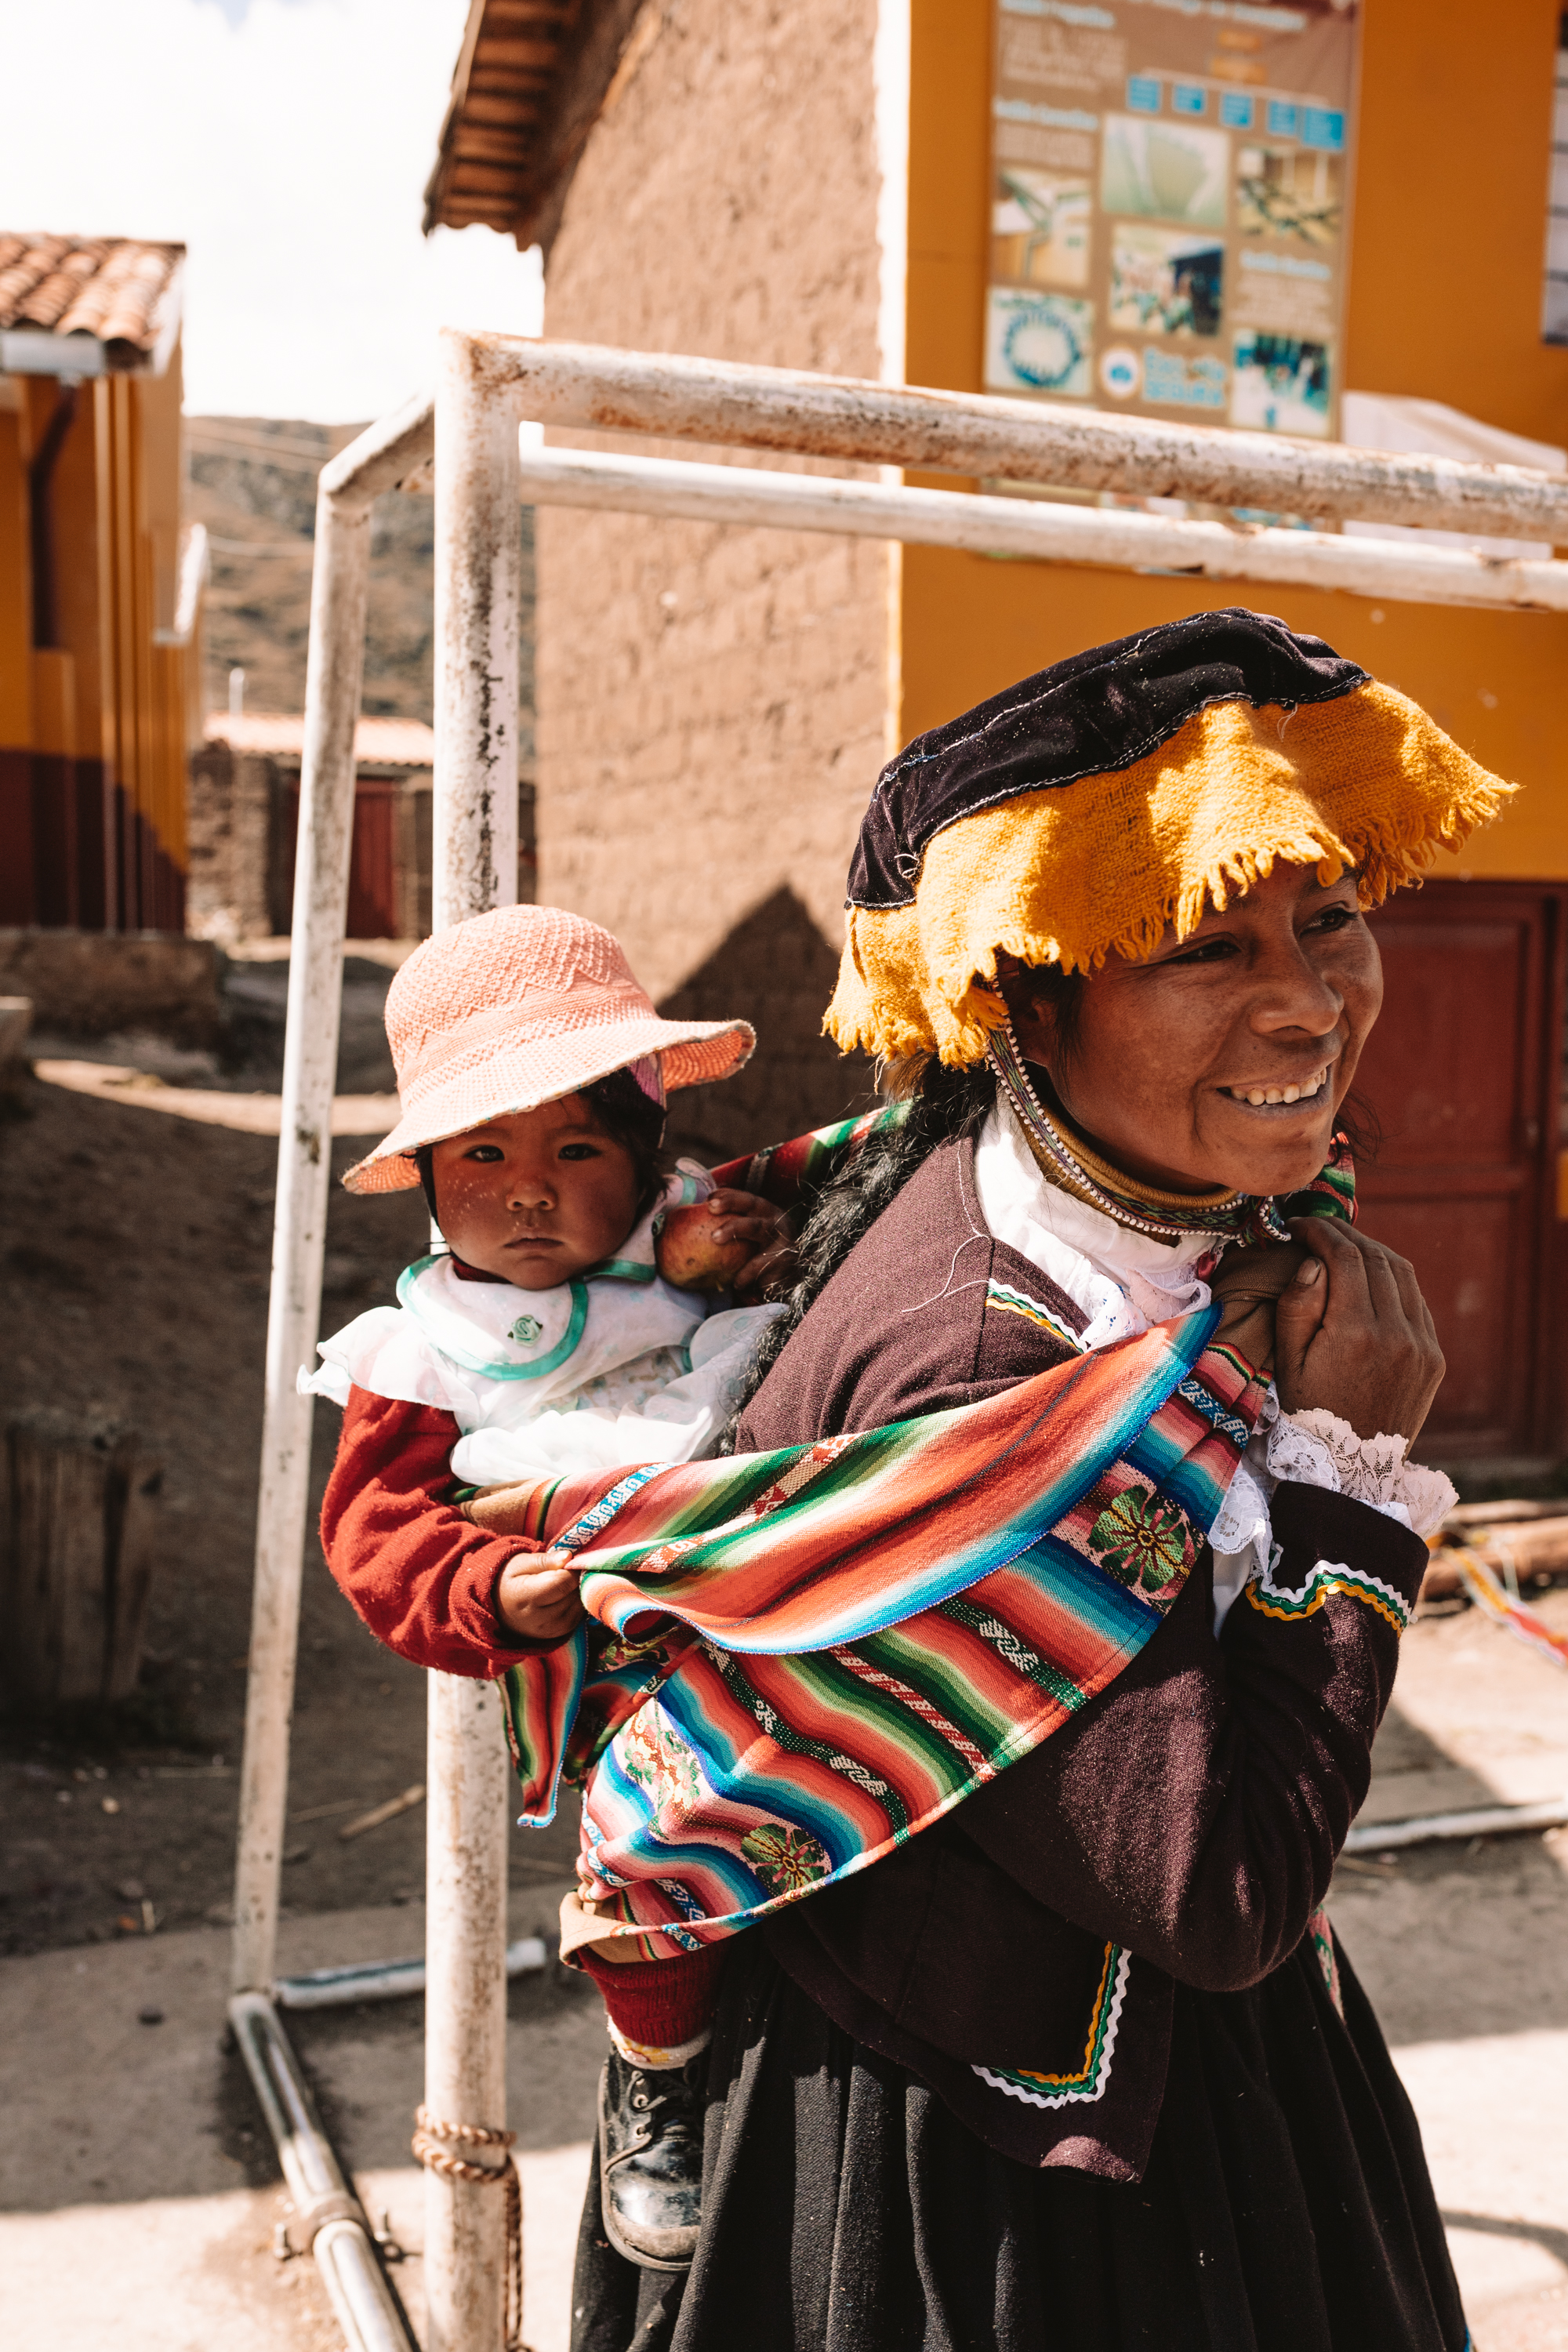 babywearing in peru, the traditional way! #babywearing #peru